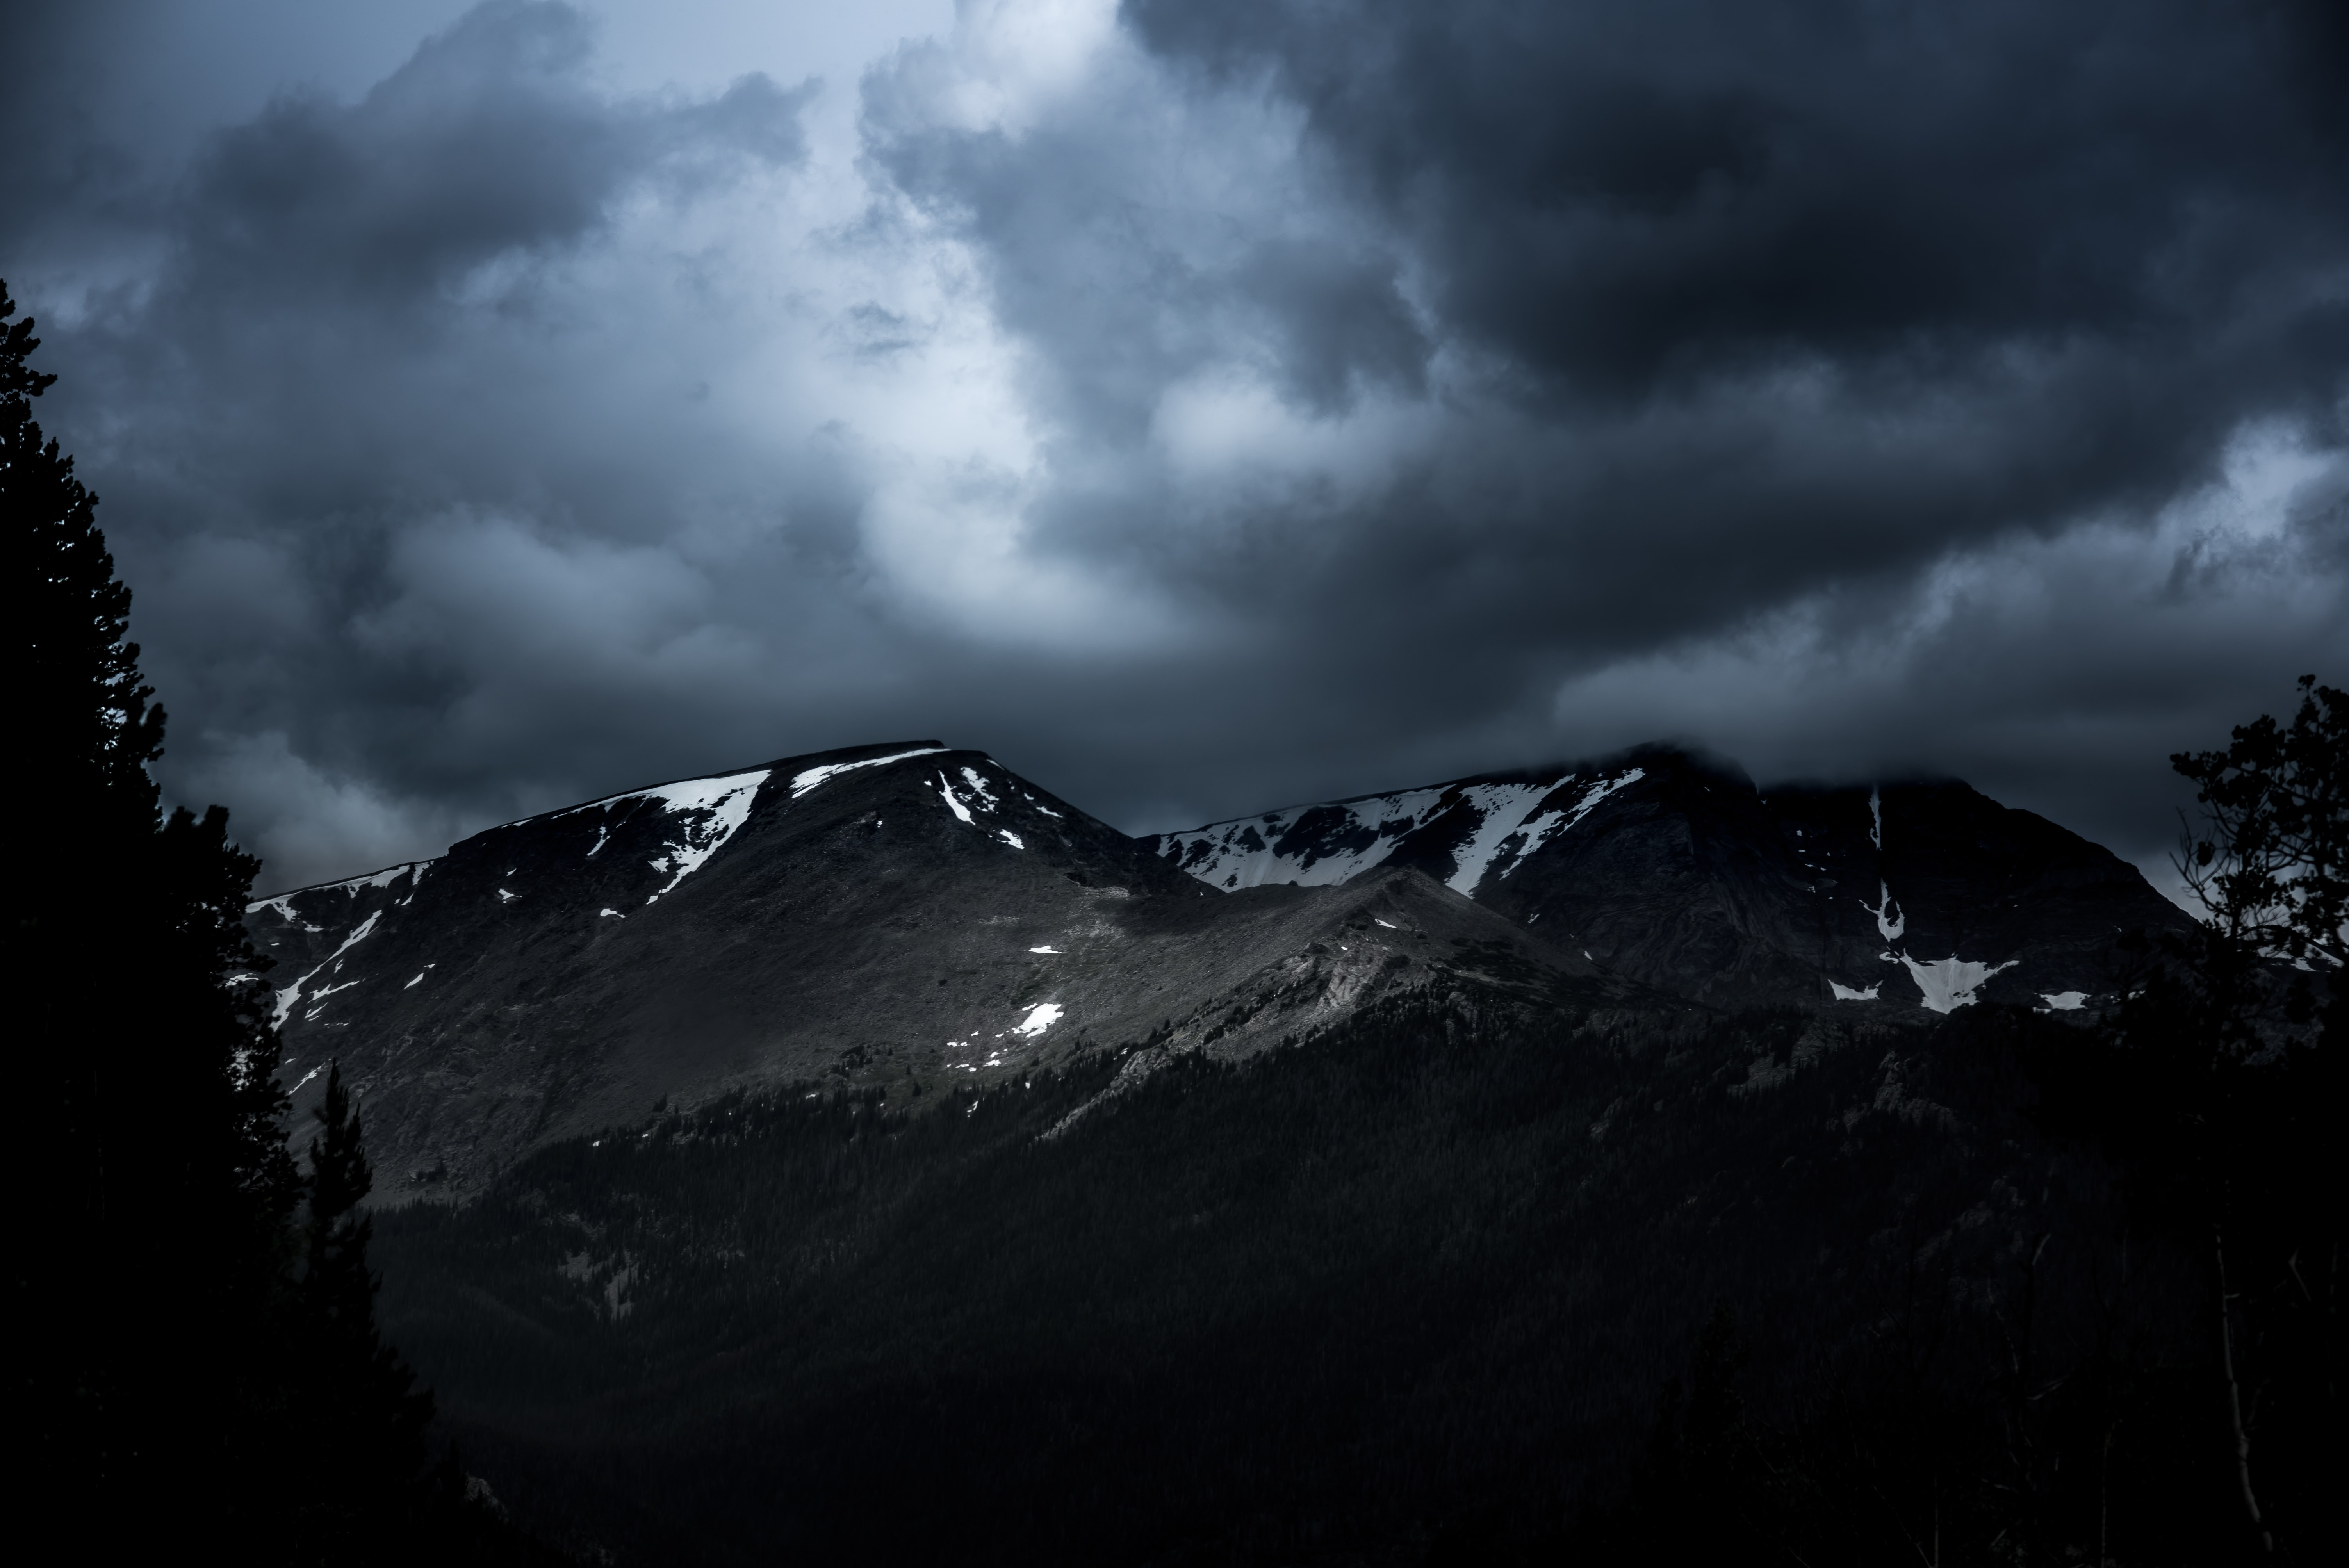 mountain range covered with snow under gray clouds